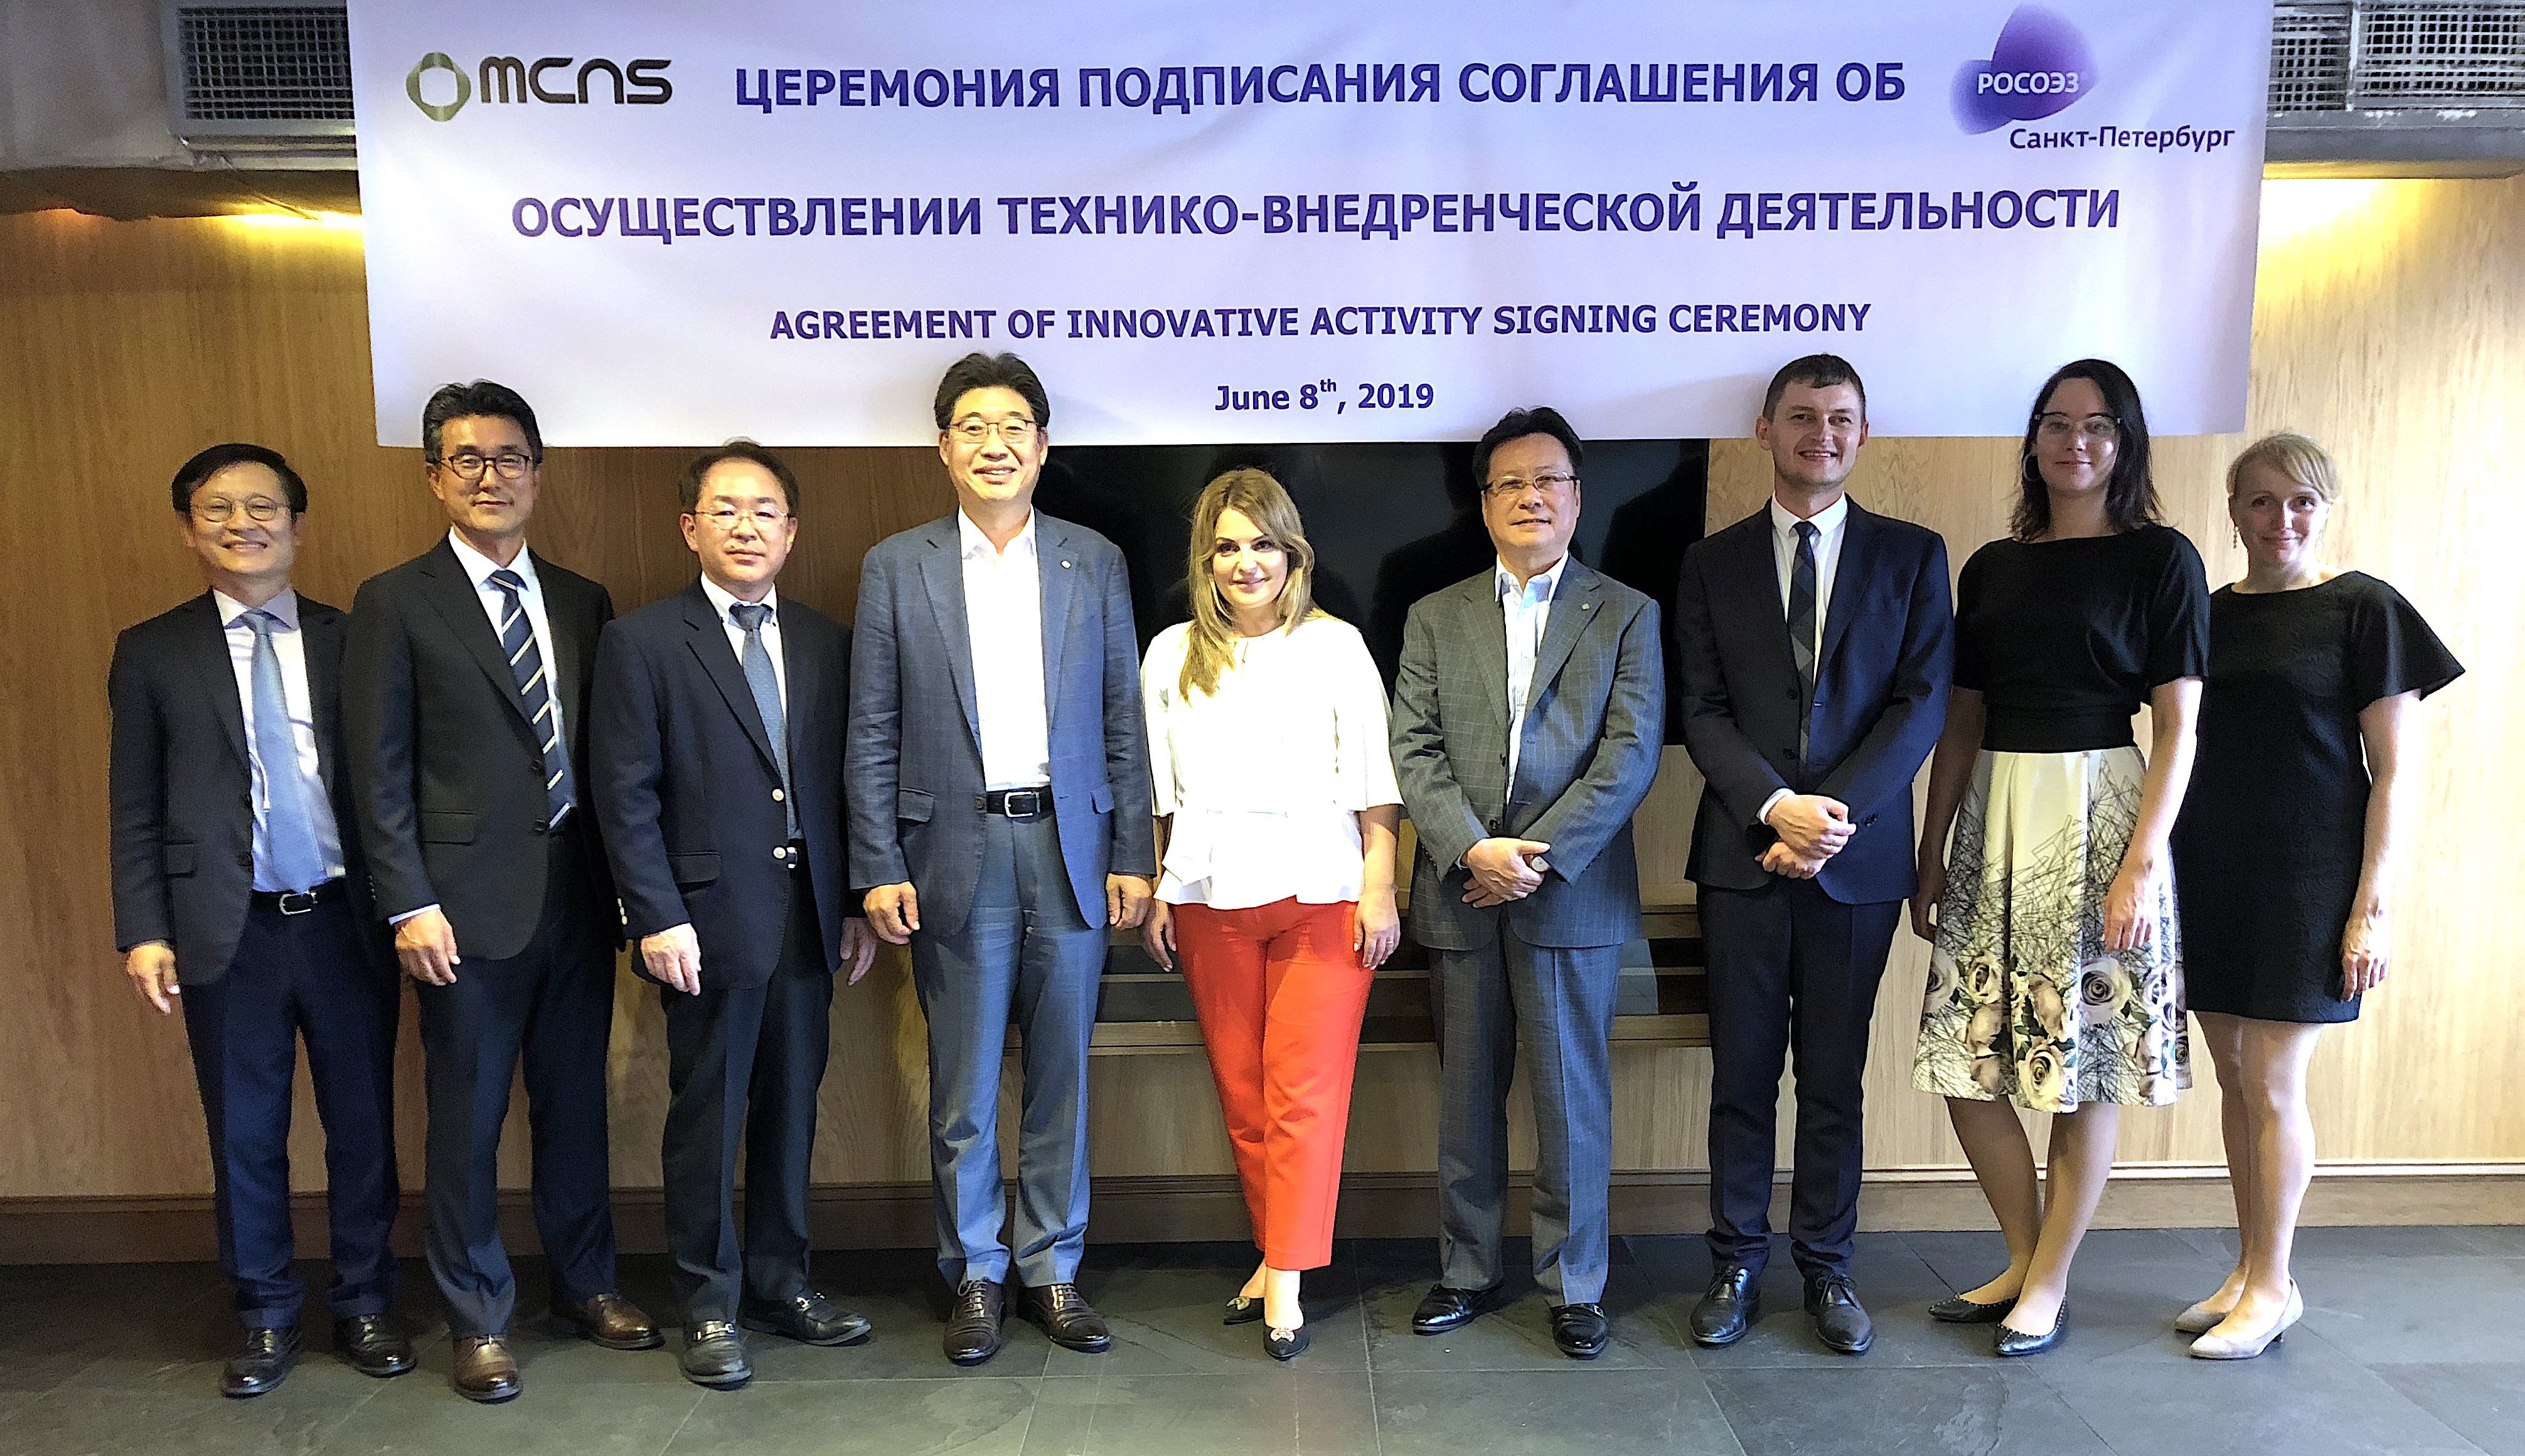 MCNS signed an investment agreement with officials of the city government and the president of the special economic zone in Saint Petersburg, Russia: Eui Joon Lim, CEO of MCNS (4th f. l.), Tamara Rondaleva, CEO of SEZ of Russia (5th f. l.), Shingo Shibata, Co-CEO of MCNS (6th f. l.), and Andrey Ivanov, Vice President of SEZ (7th f. l.). (Source: SKC)